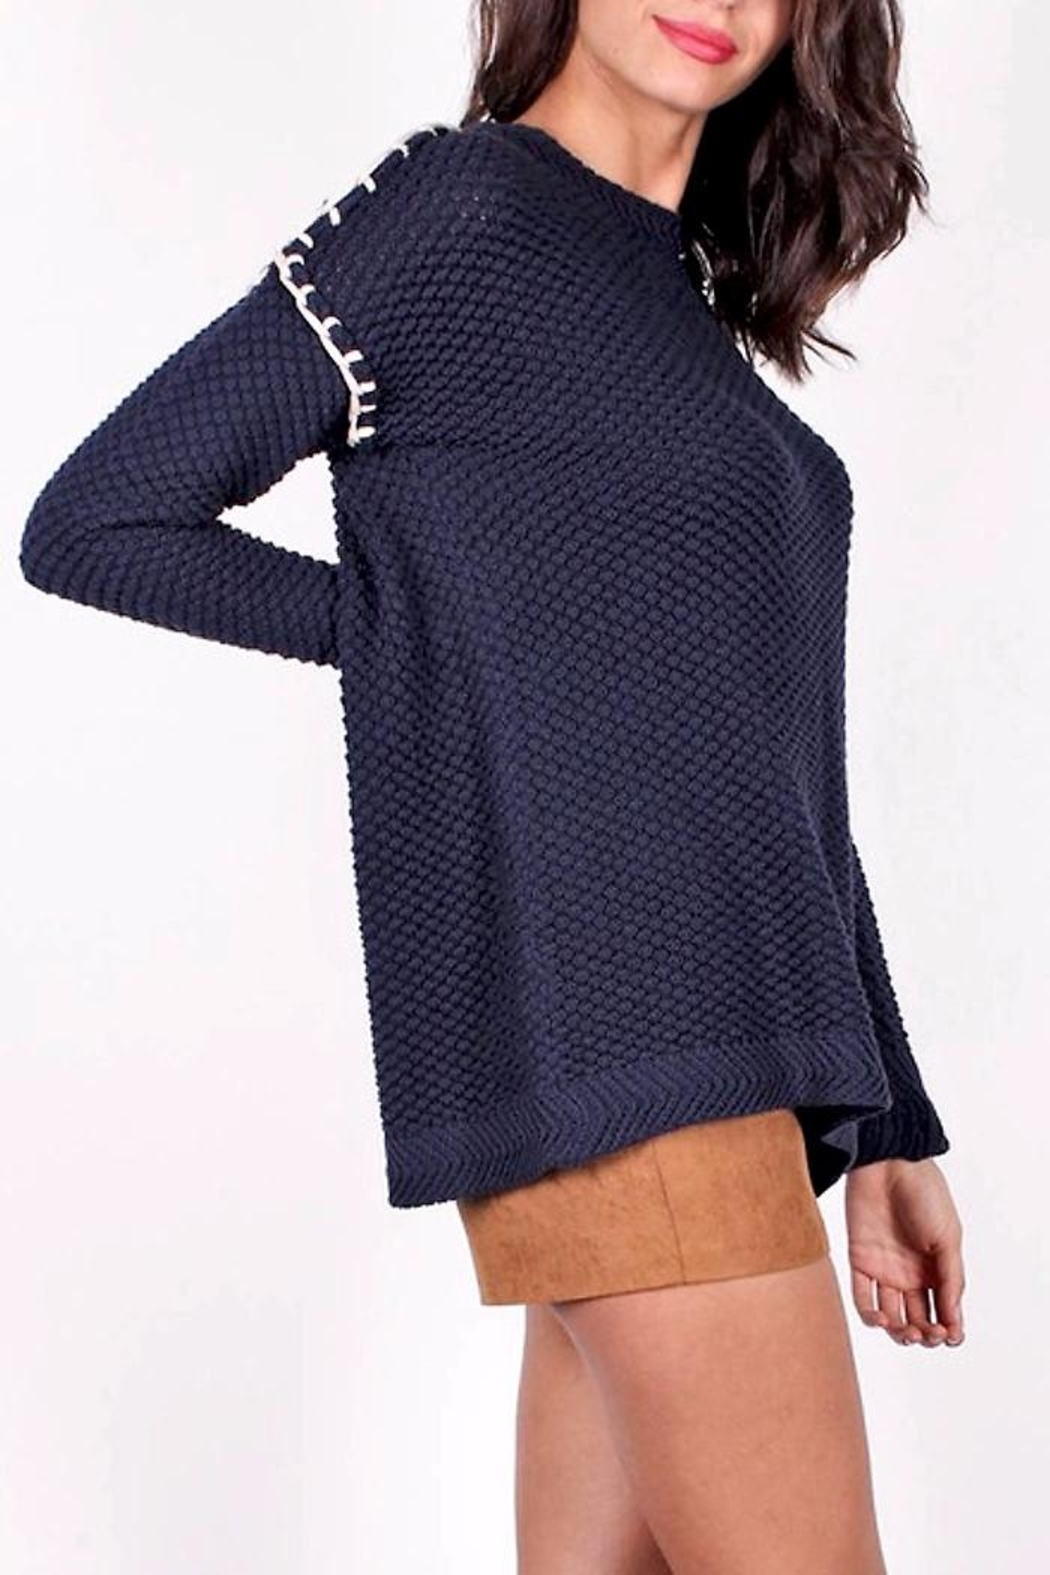 People Outfitter Shannon Open-Back Sweater - Front Full Image